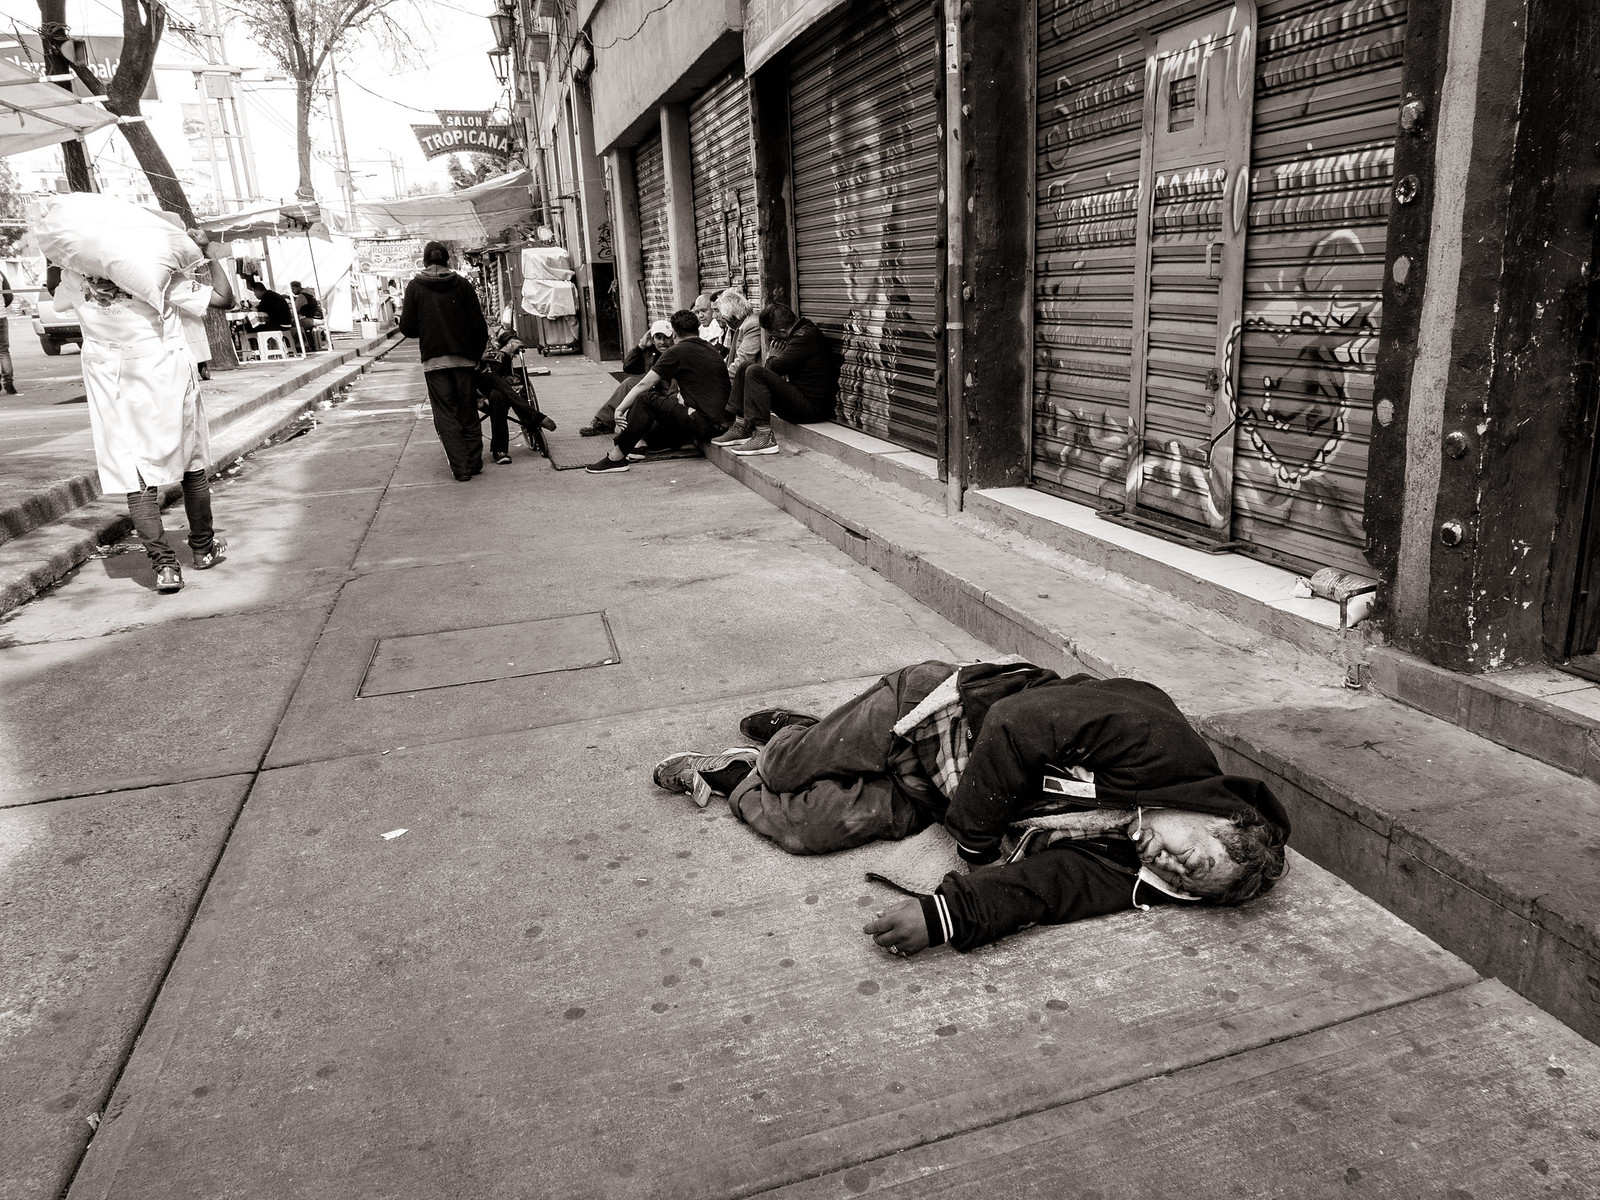 Hard life in Mexico city | by eric_demers